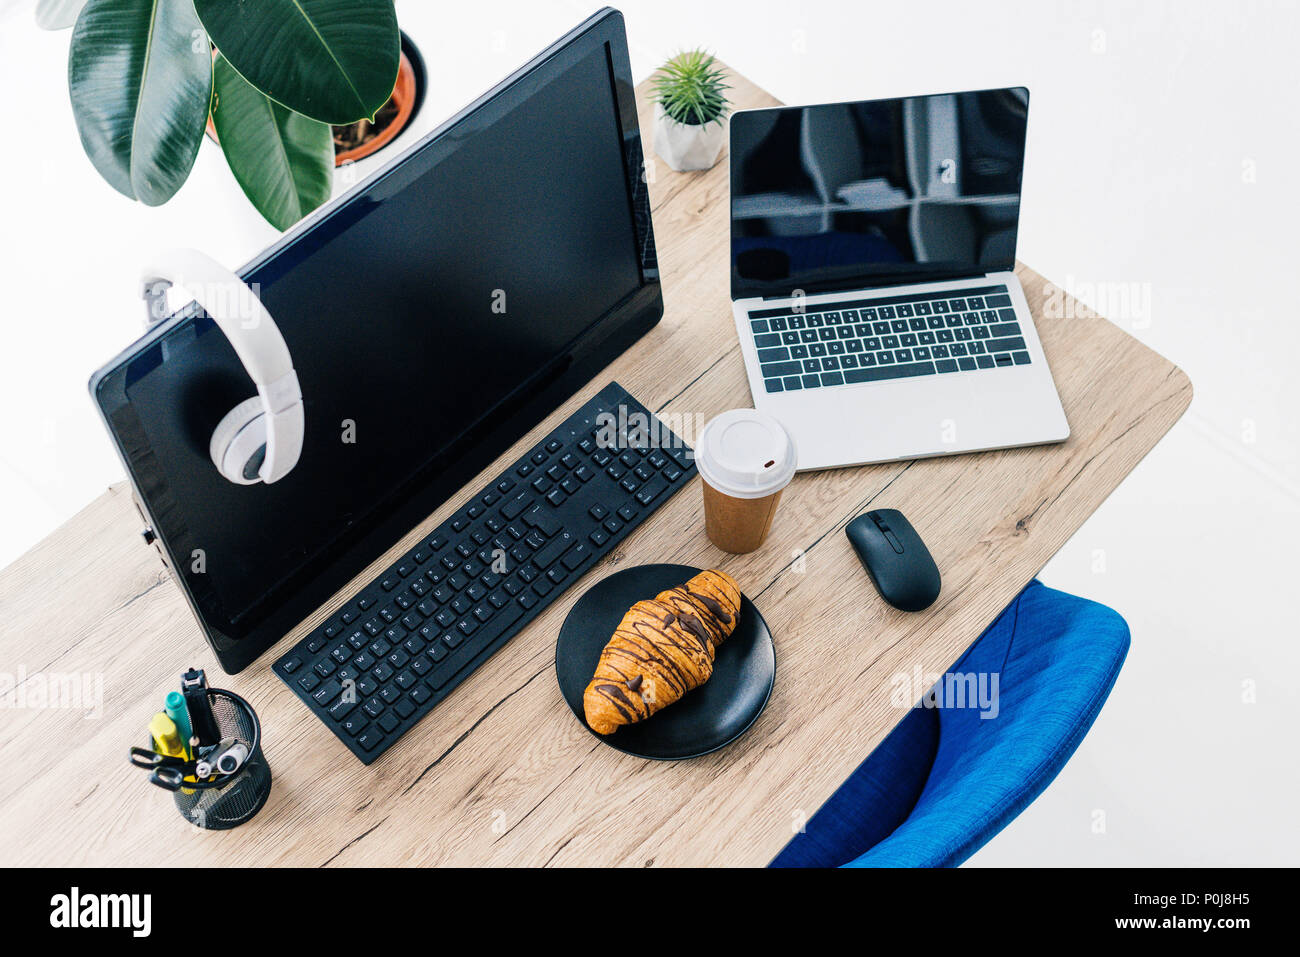 high angle view of headphones on blank computer monitor, laptop with blank screen, stationery, croissant and coffee cup on table - Stock Image